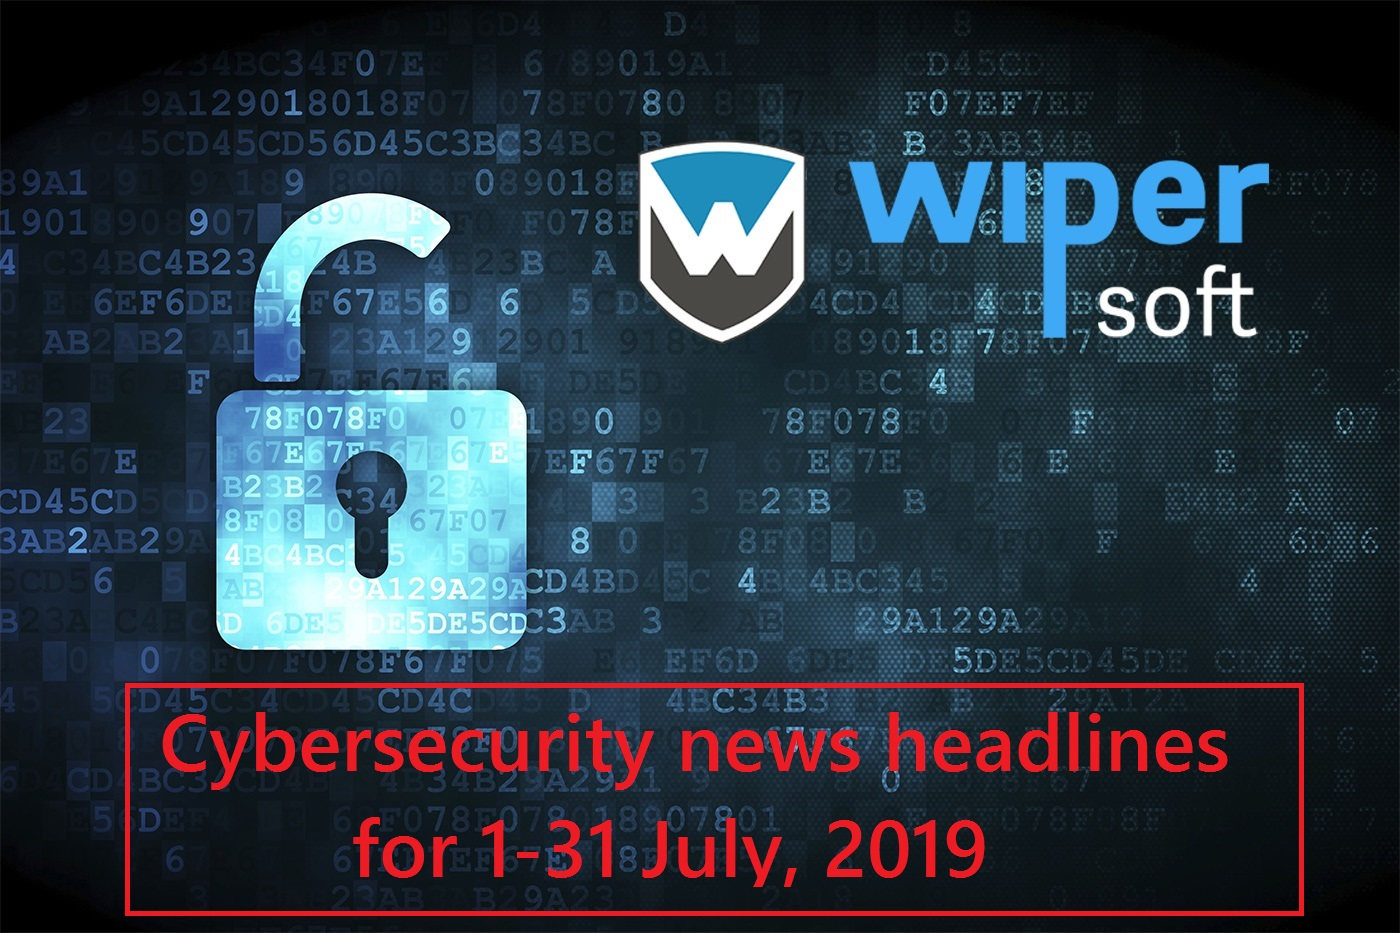 Cybersecurity news headlines for 1-31 July, 2019